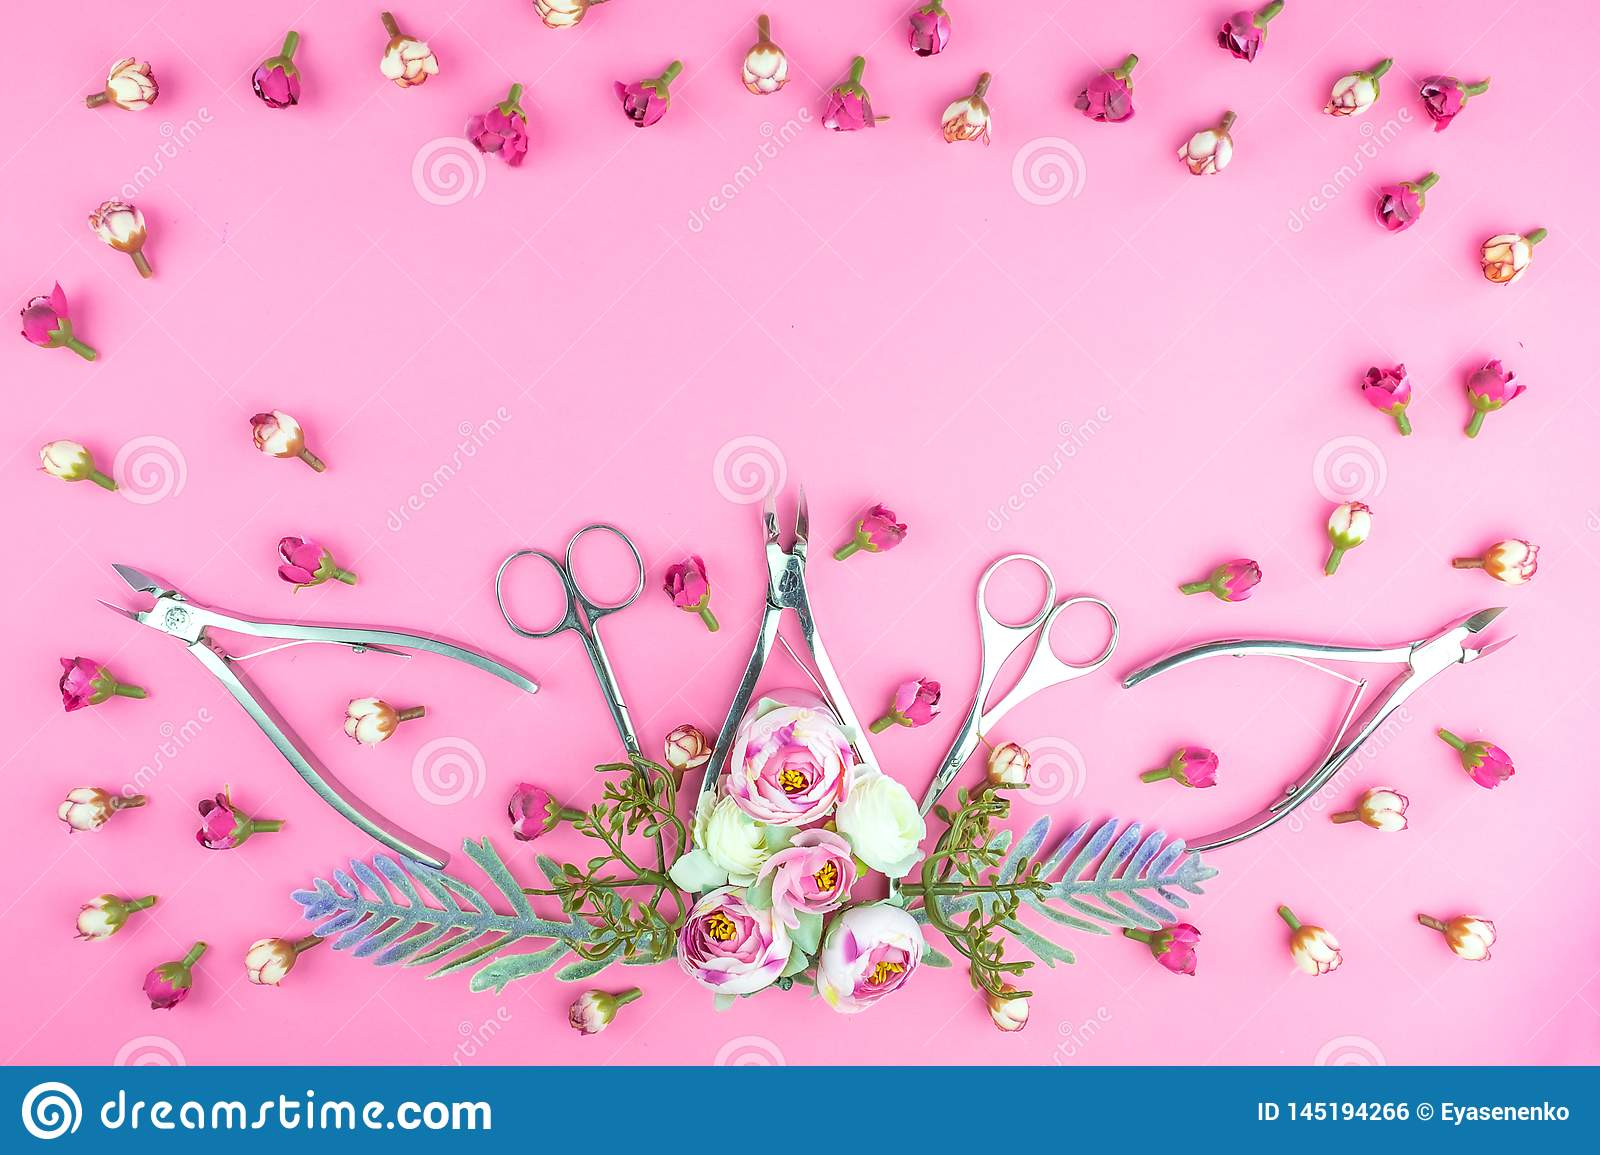 Manicure tools on a pink background decorated with flowers.